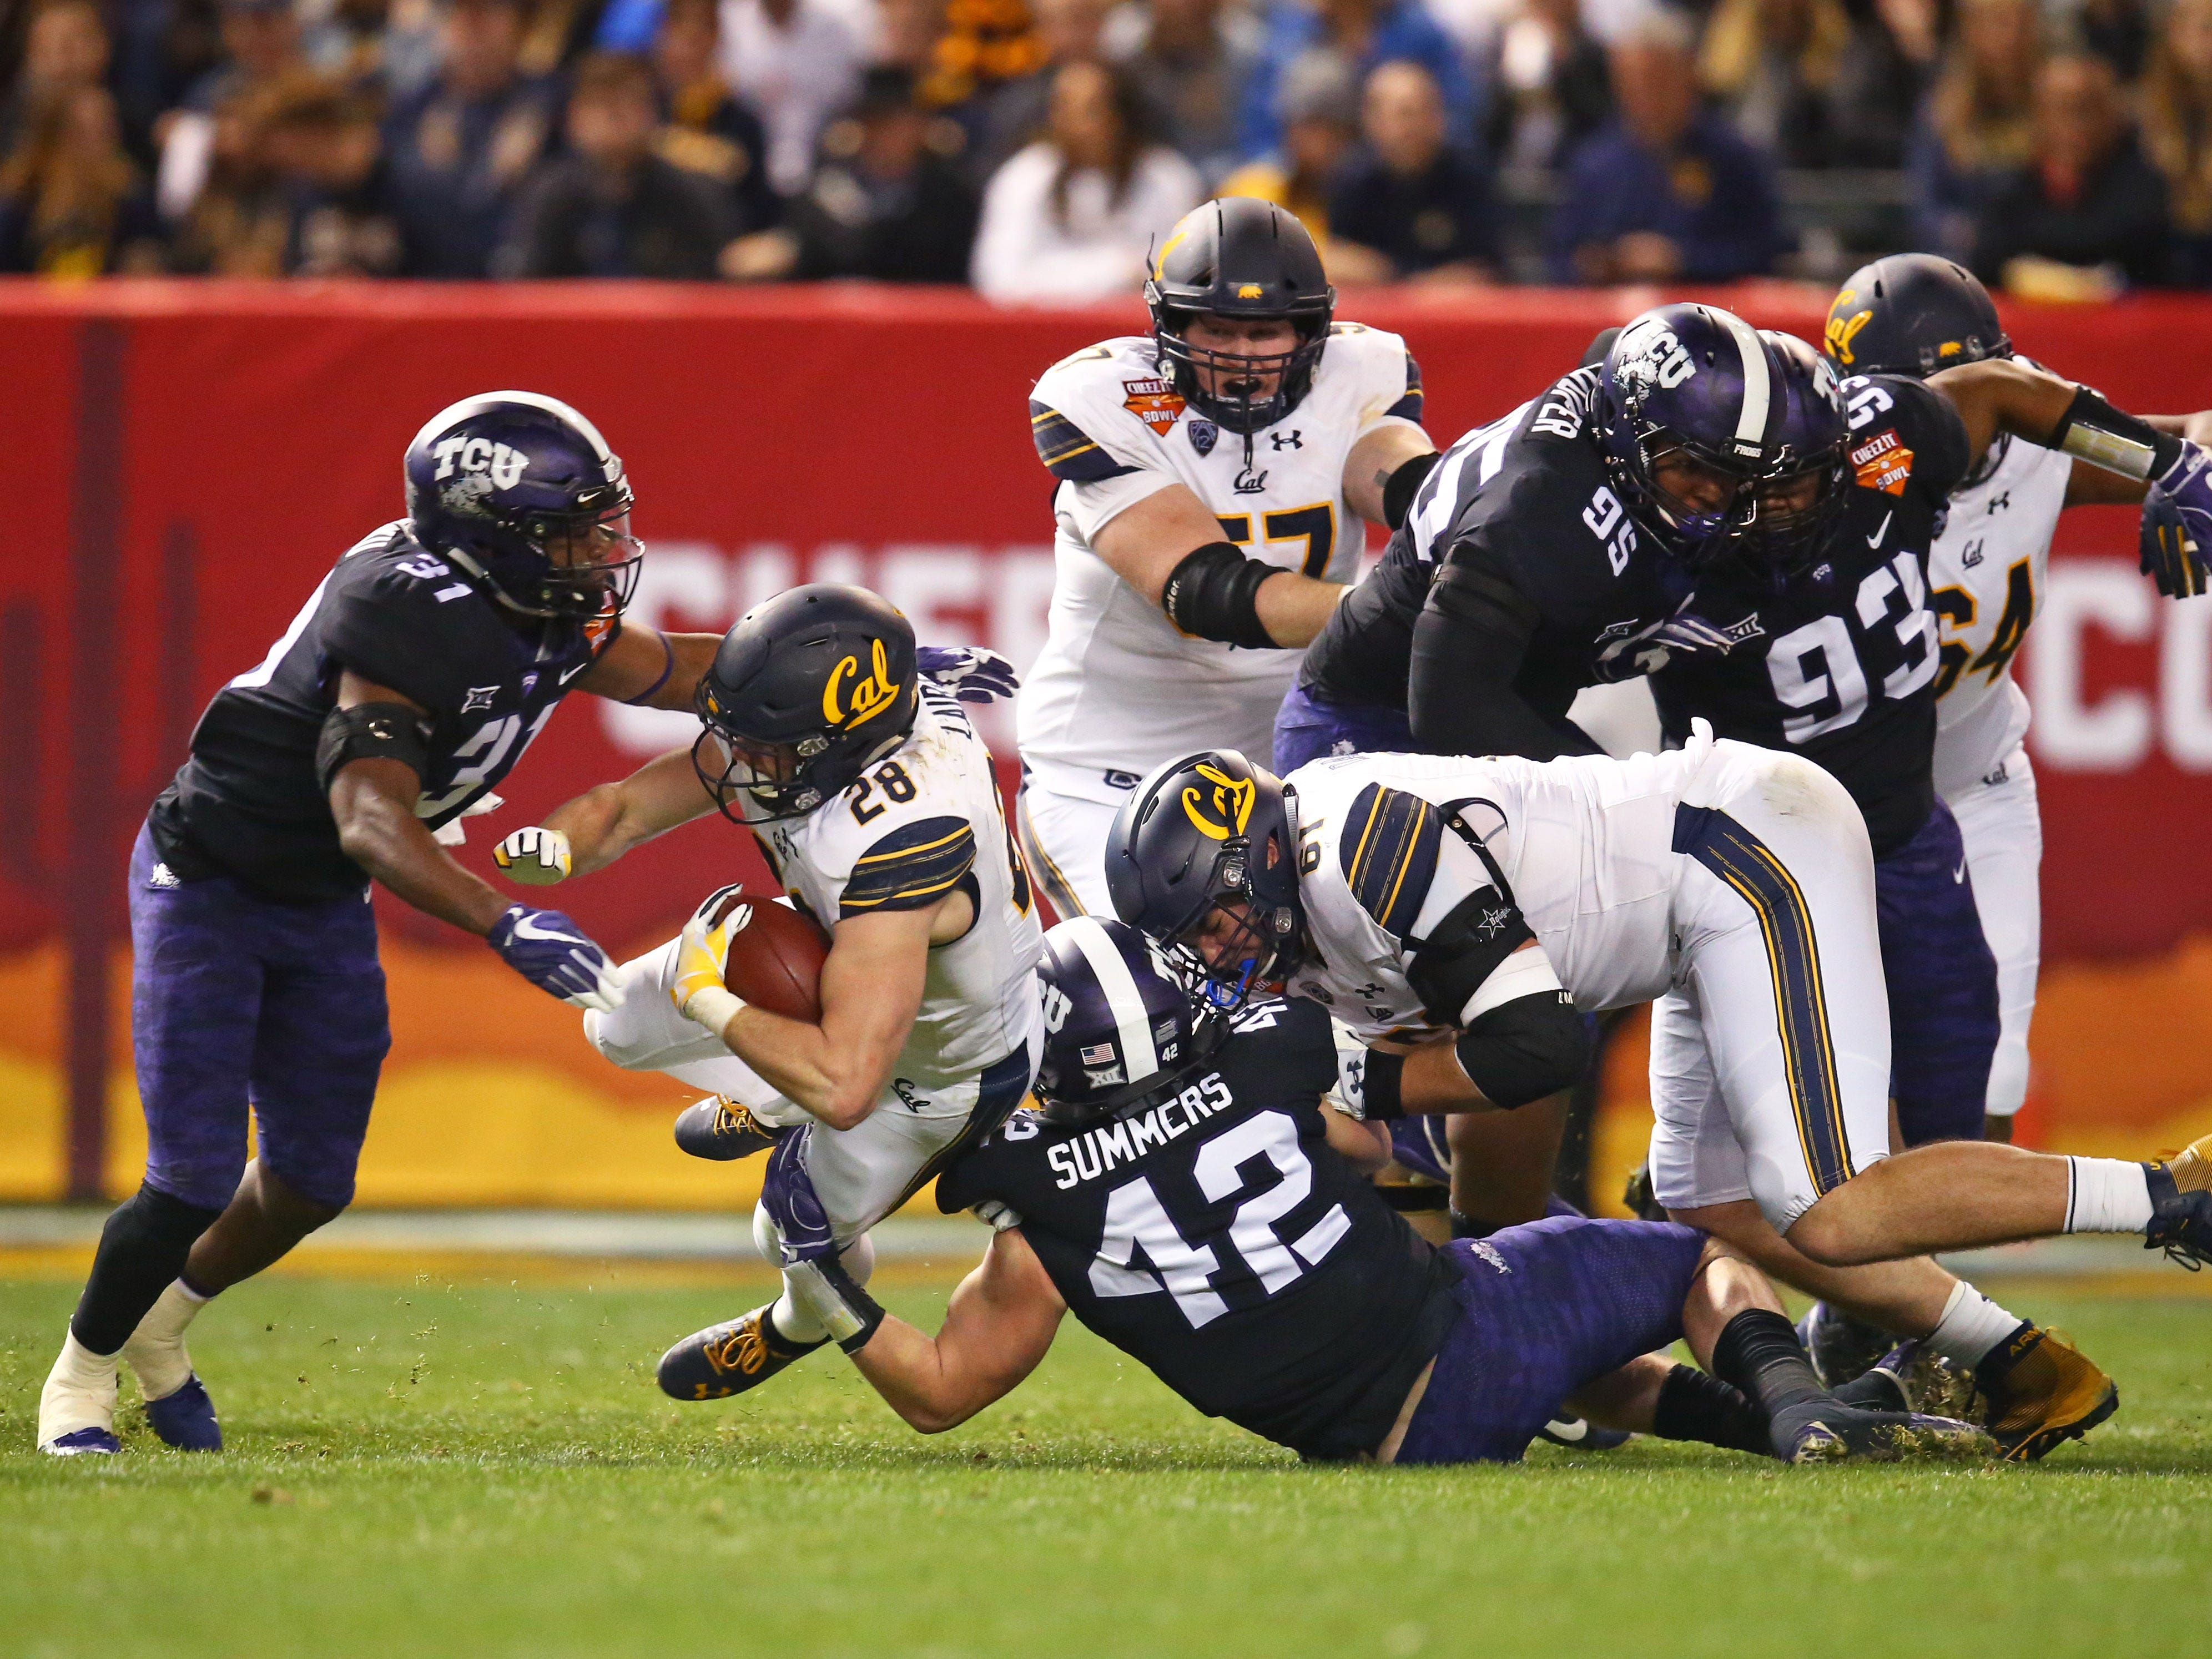 Dec 26, 2018; Phoenix, AZ, USA; California Golden Bears running back Patrick Laird (28) is tackled by Texas Christian Horned Frogs linebacker Ty Summers (42) and safety Ridwan Issahaku (31) in the first half of the 2018 Cheez-It Bowl at Chase Field.